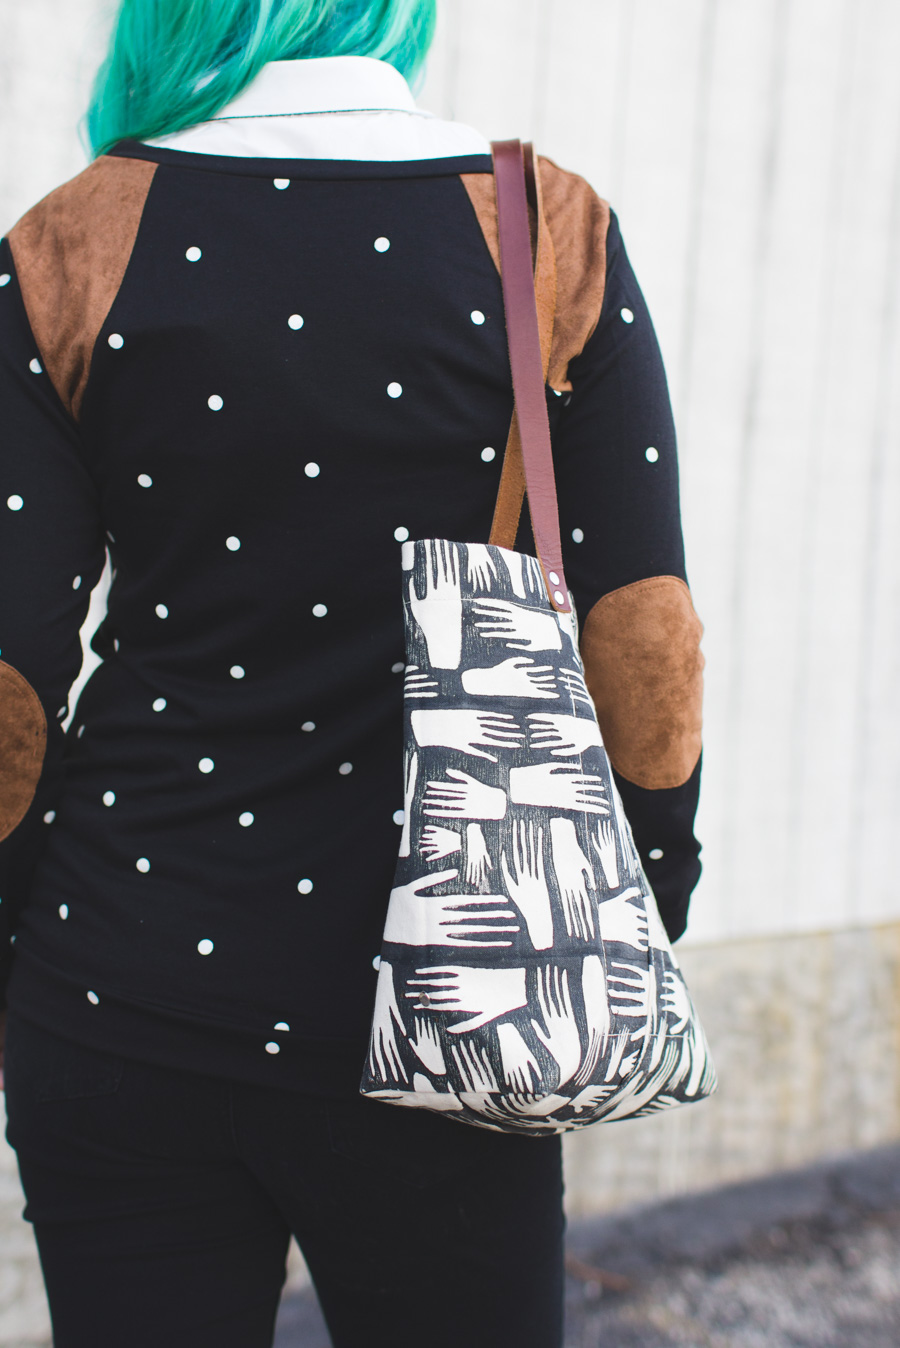 moorea seal, tote bag, what I wore, outfit post, ohio fashion blog